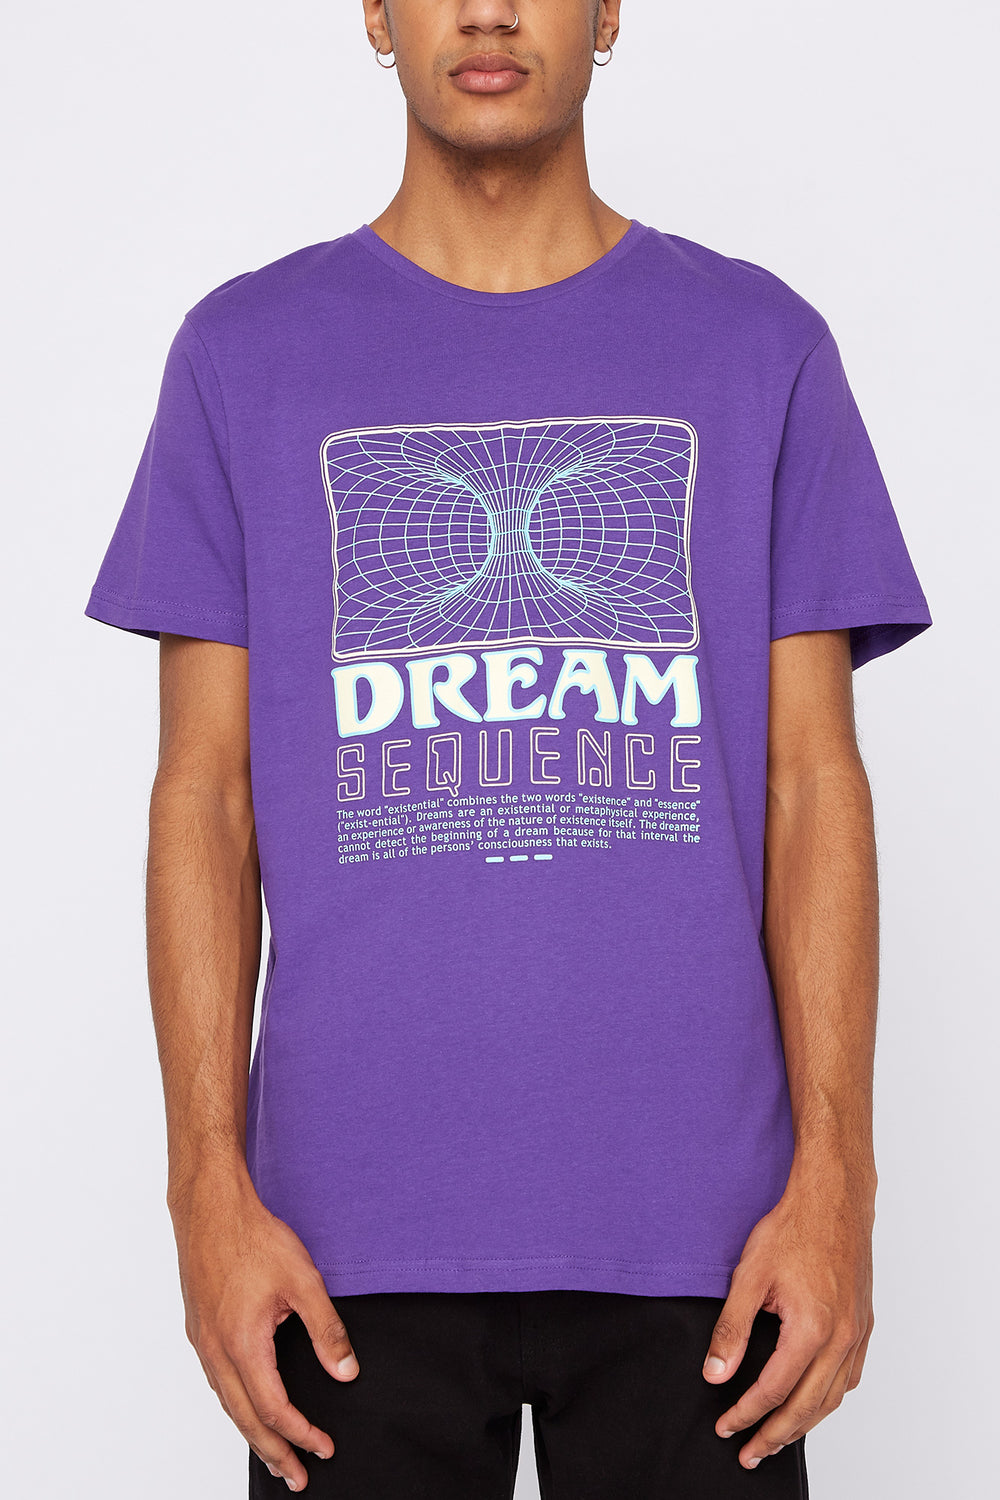 T-Shirt Dream Sequence Arsenic Homme Violet